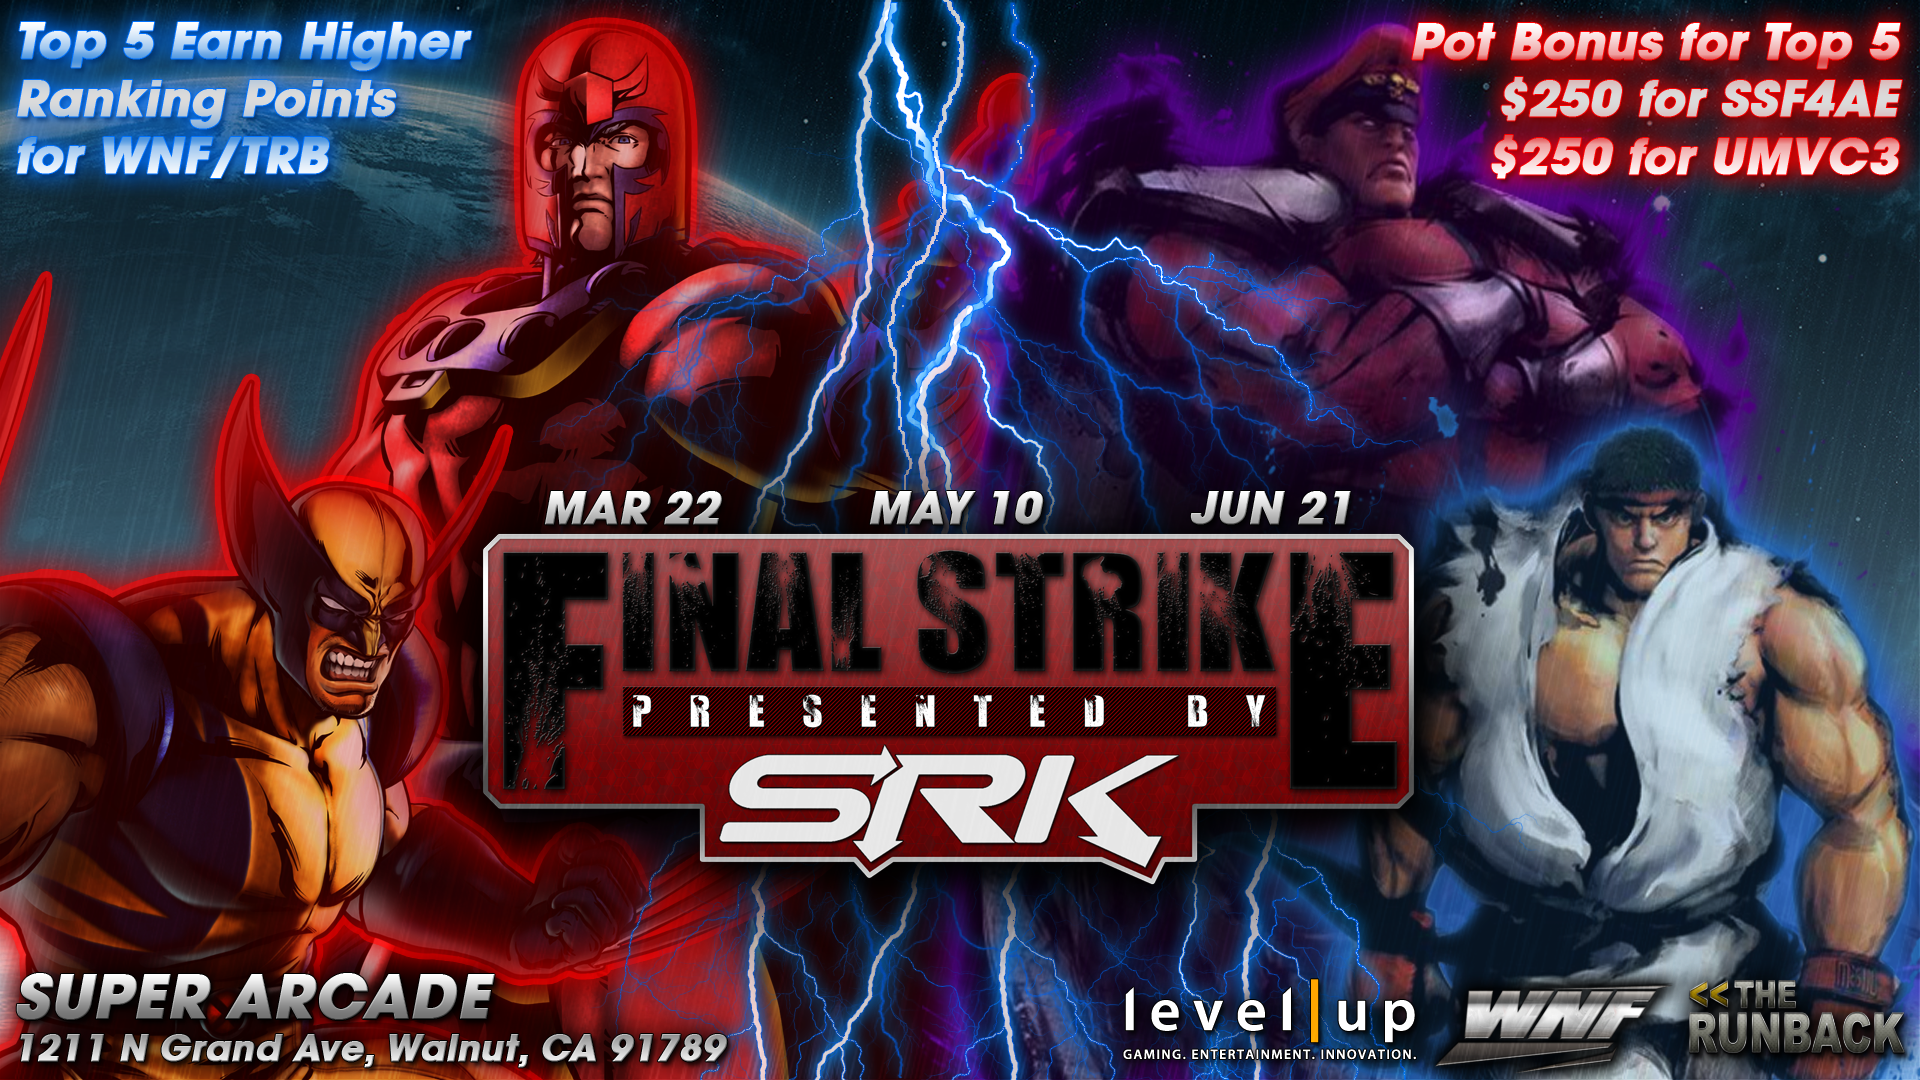 Final Strike Presented by SRK   Level Up and Shoryuken.com(SRK), the official sponsor of Weds Night Fights and The Runback, are bringing a unique tournament series for the community with...